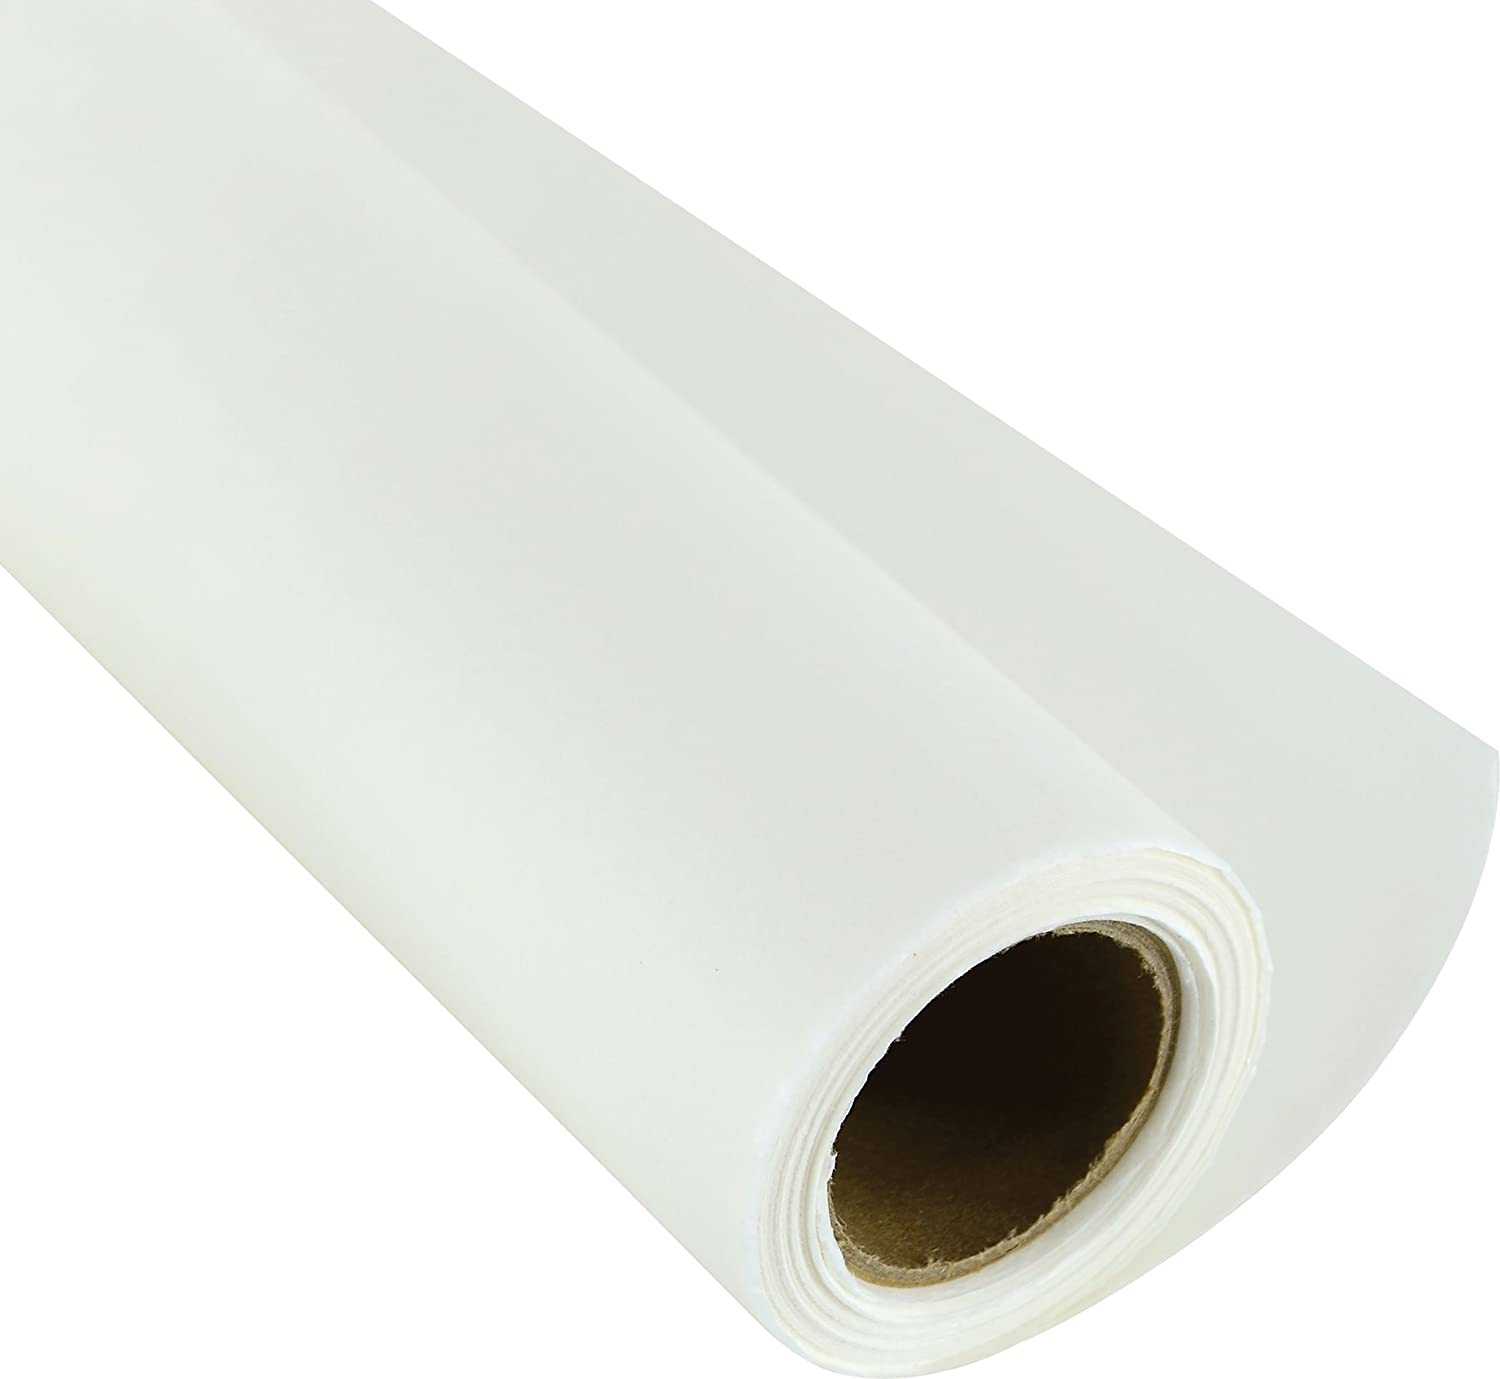 Bee Paper White Sketch and Trace Roll, 12-Inch by 50-Yards 515R-5012